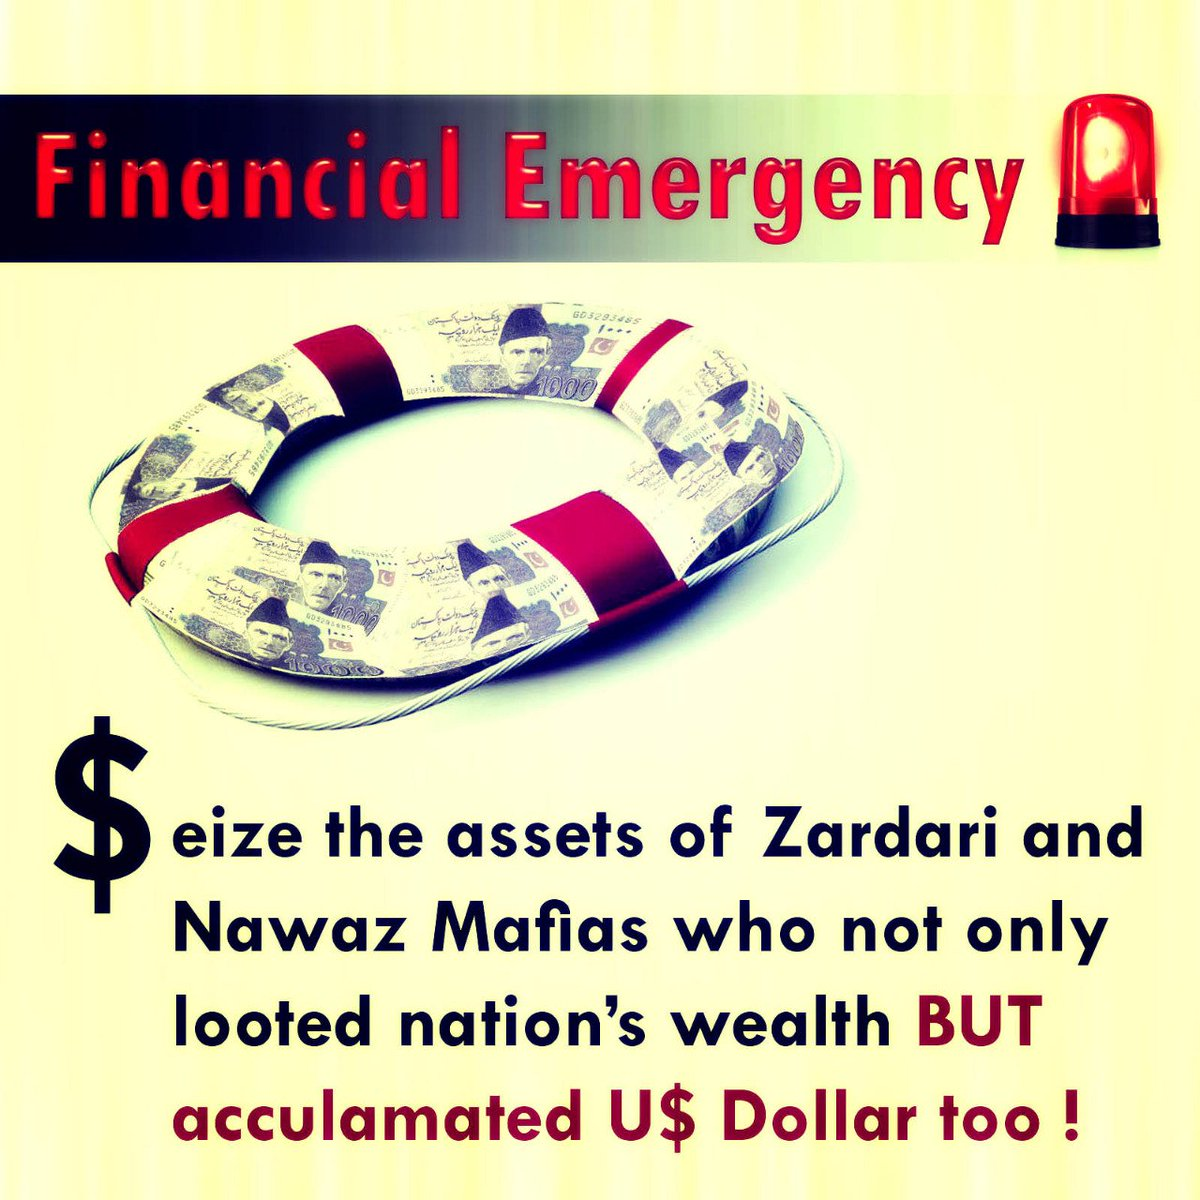 We have to boycott dollar to strengthen our economy  #FinancialEmergency<br>http://pic.twitter.com/Po7FmvcaJx